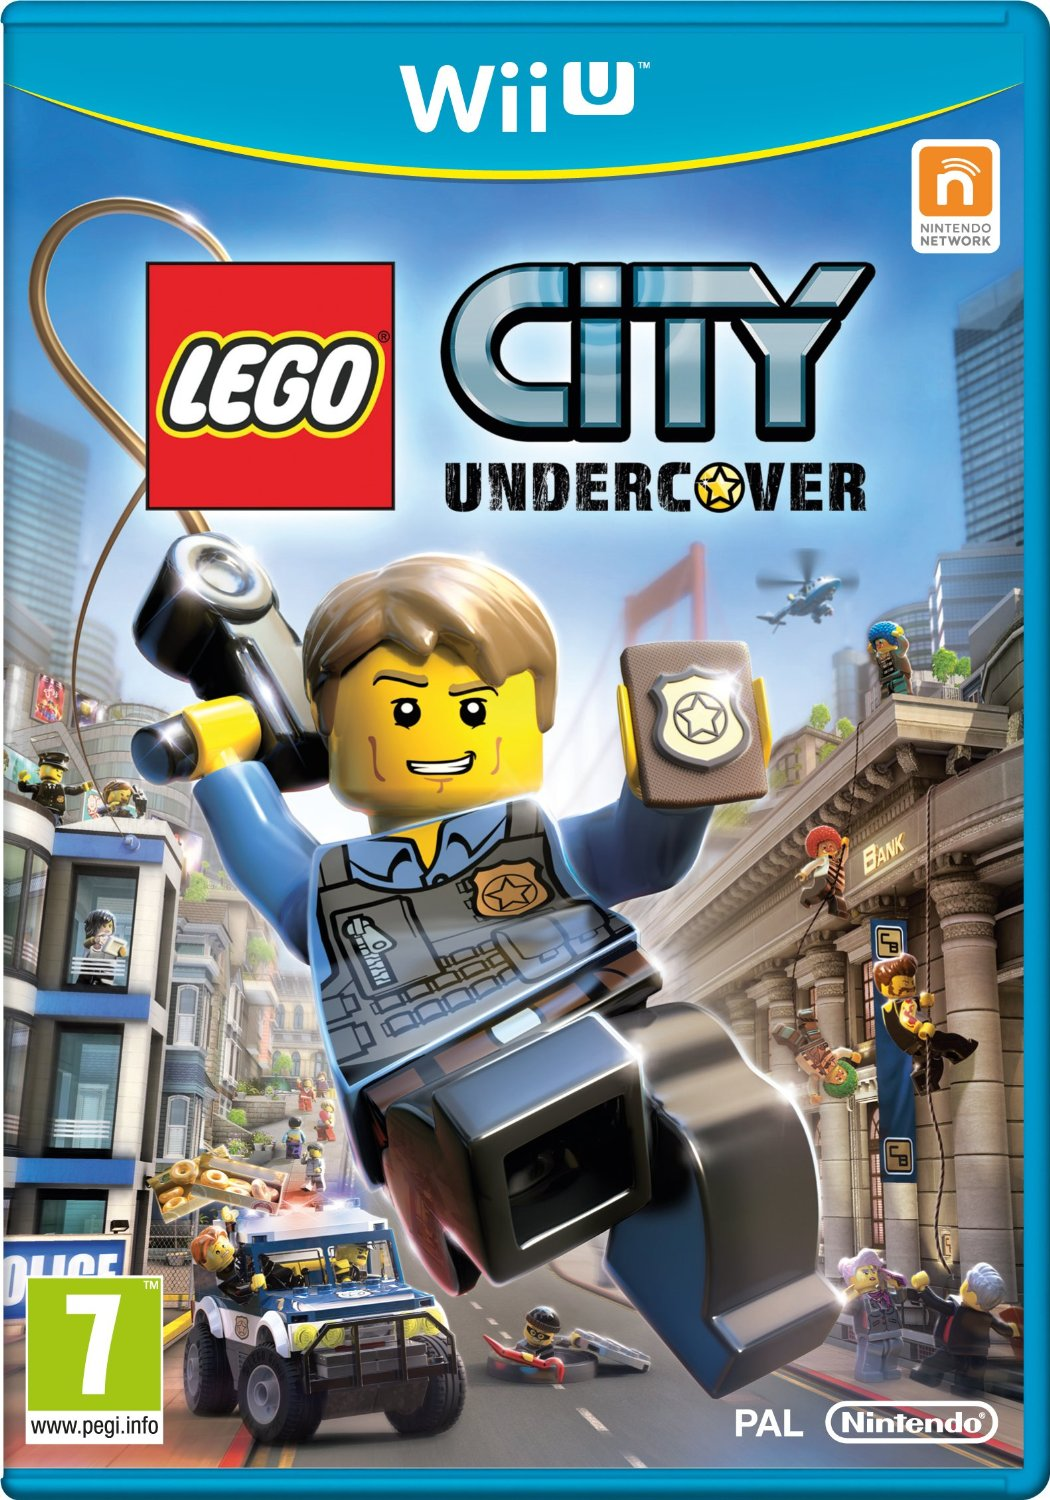 Lego City Undercover on Wii U nintendo game